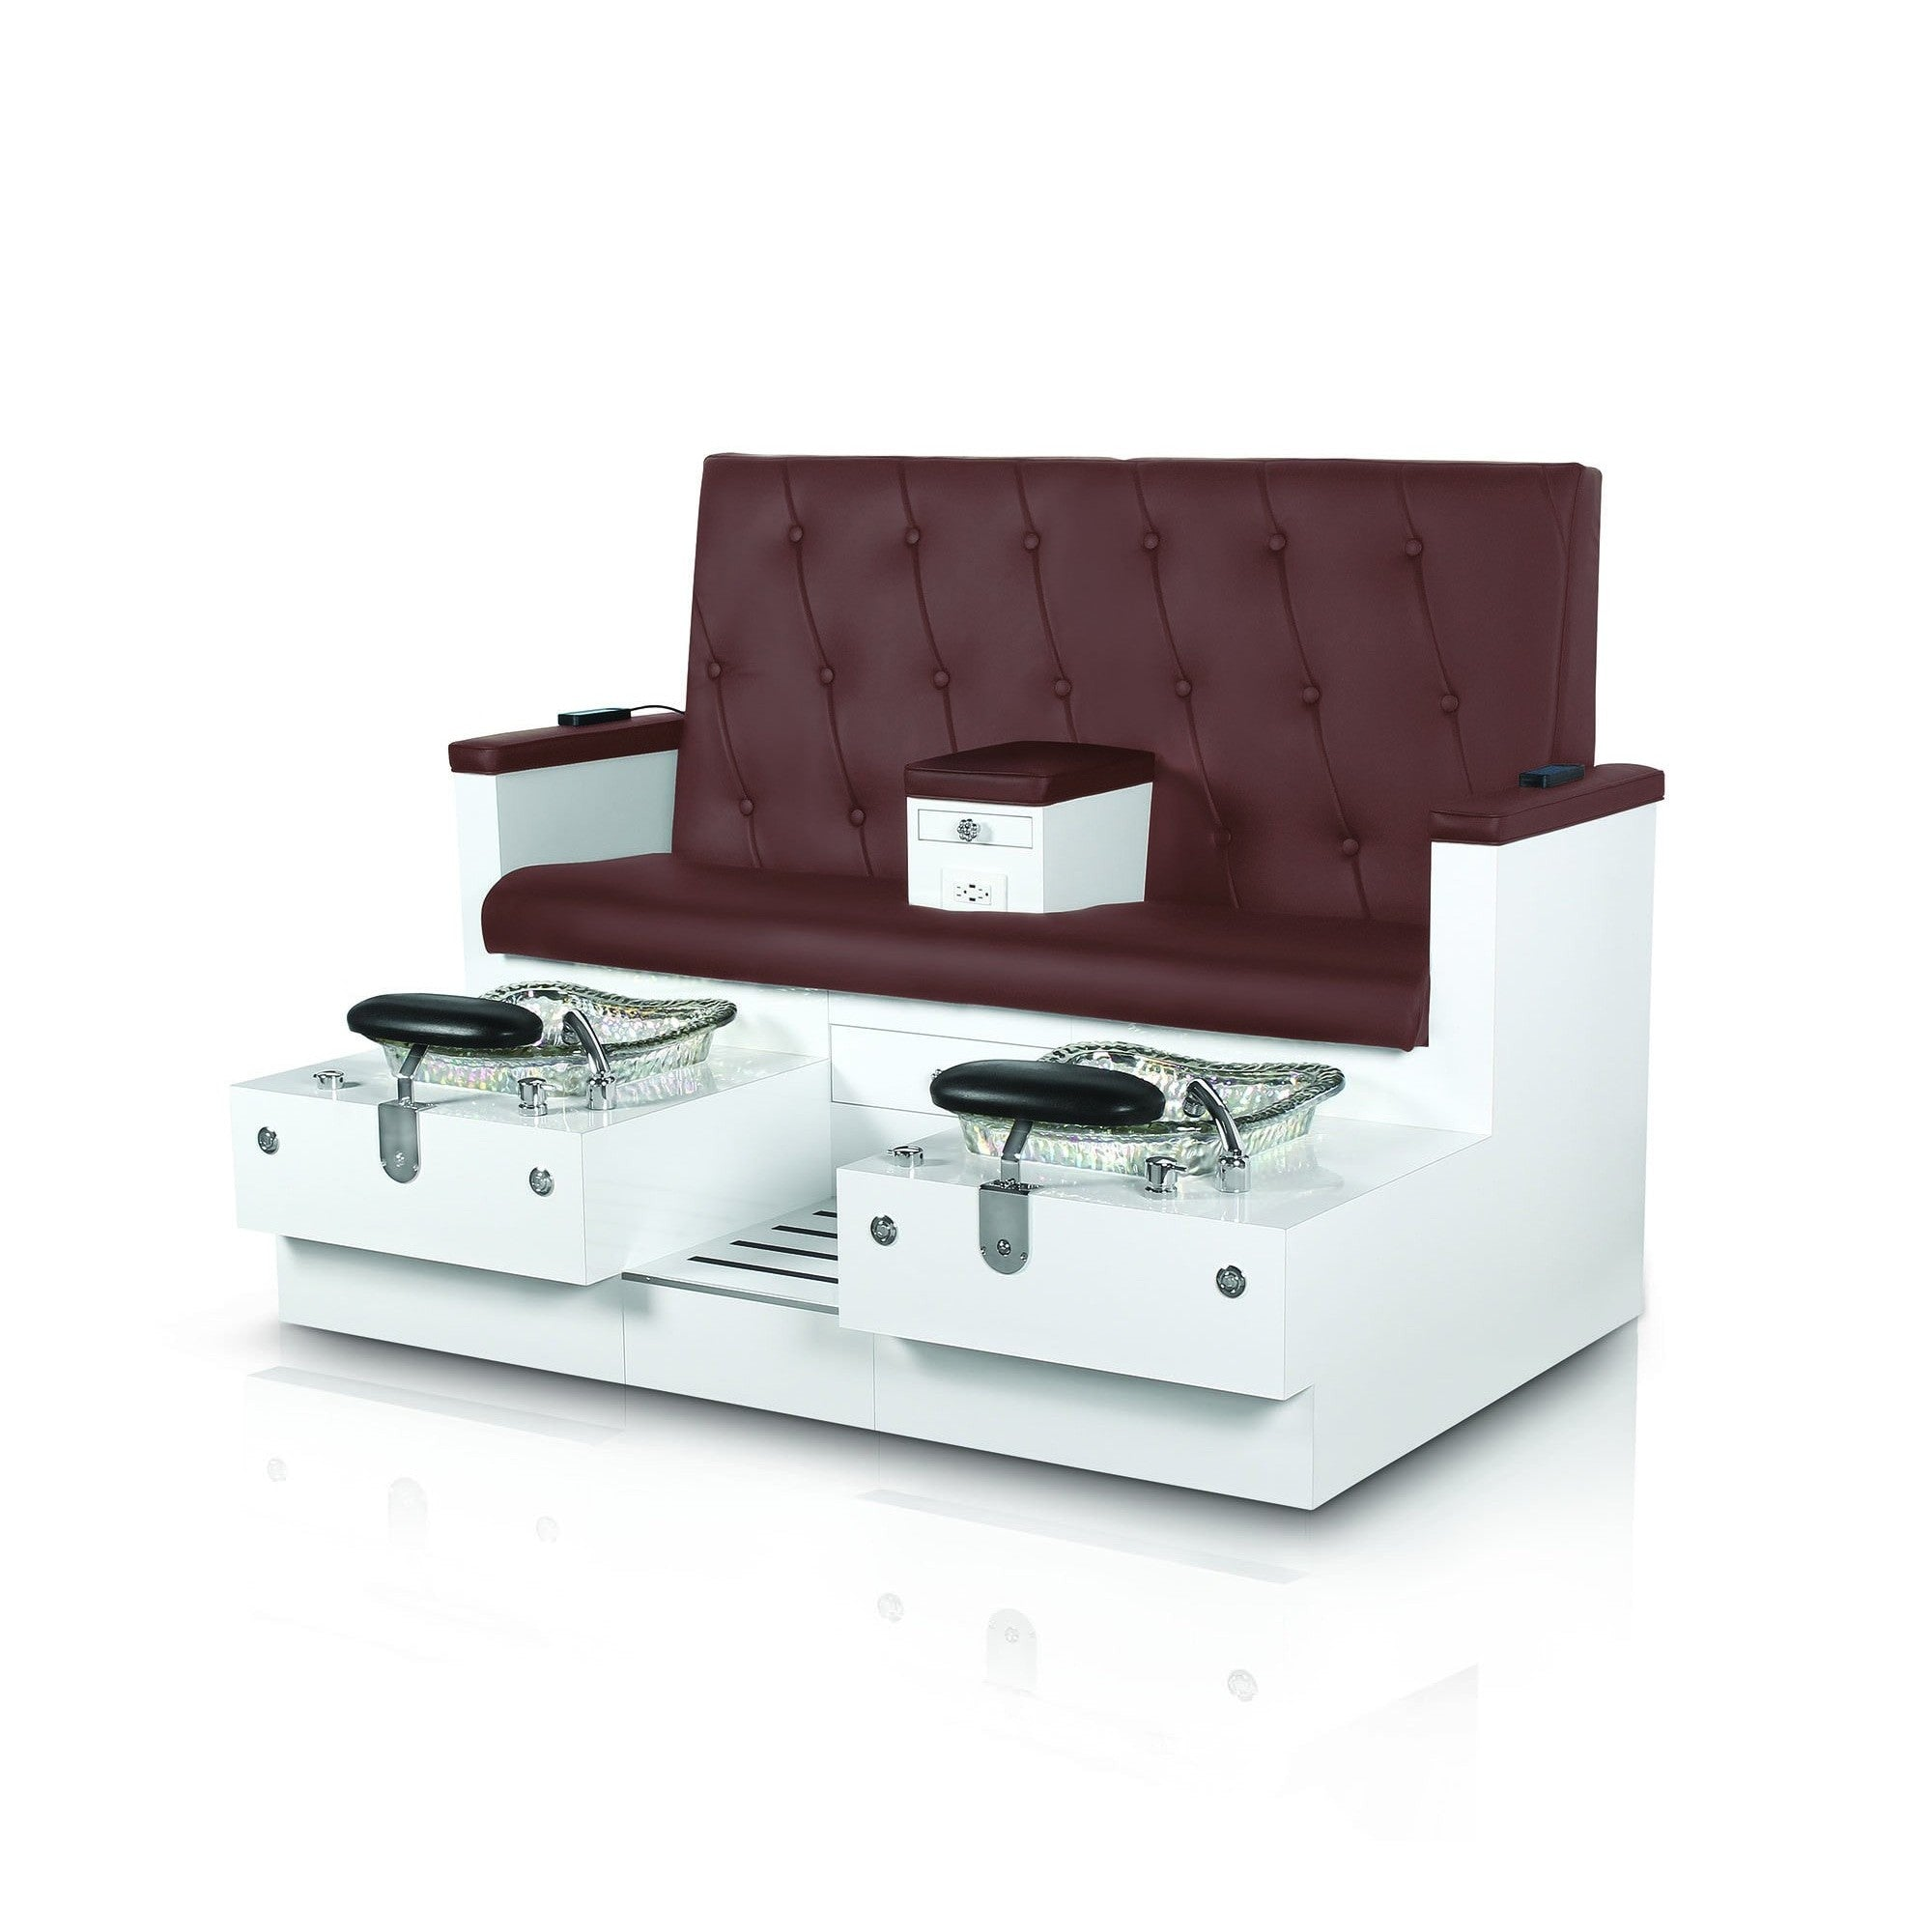 Gulfstream Gulfstream Vienna Double Pedicure Chair Bench Pedicure & Spa Chairs - ChairsThatGive